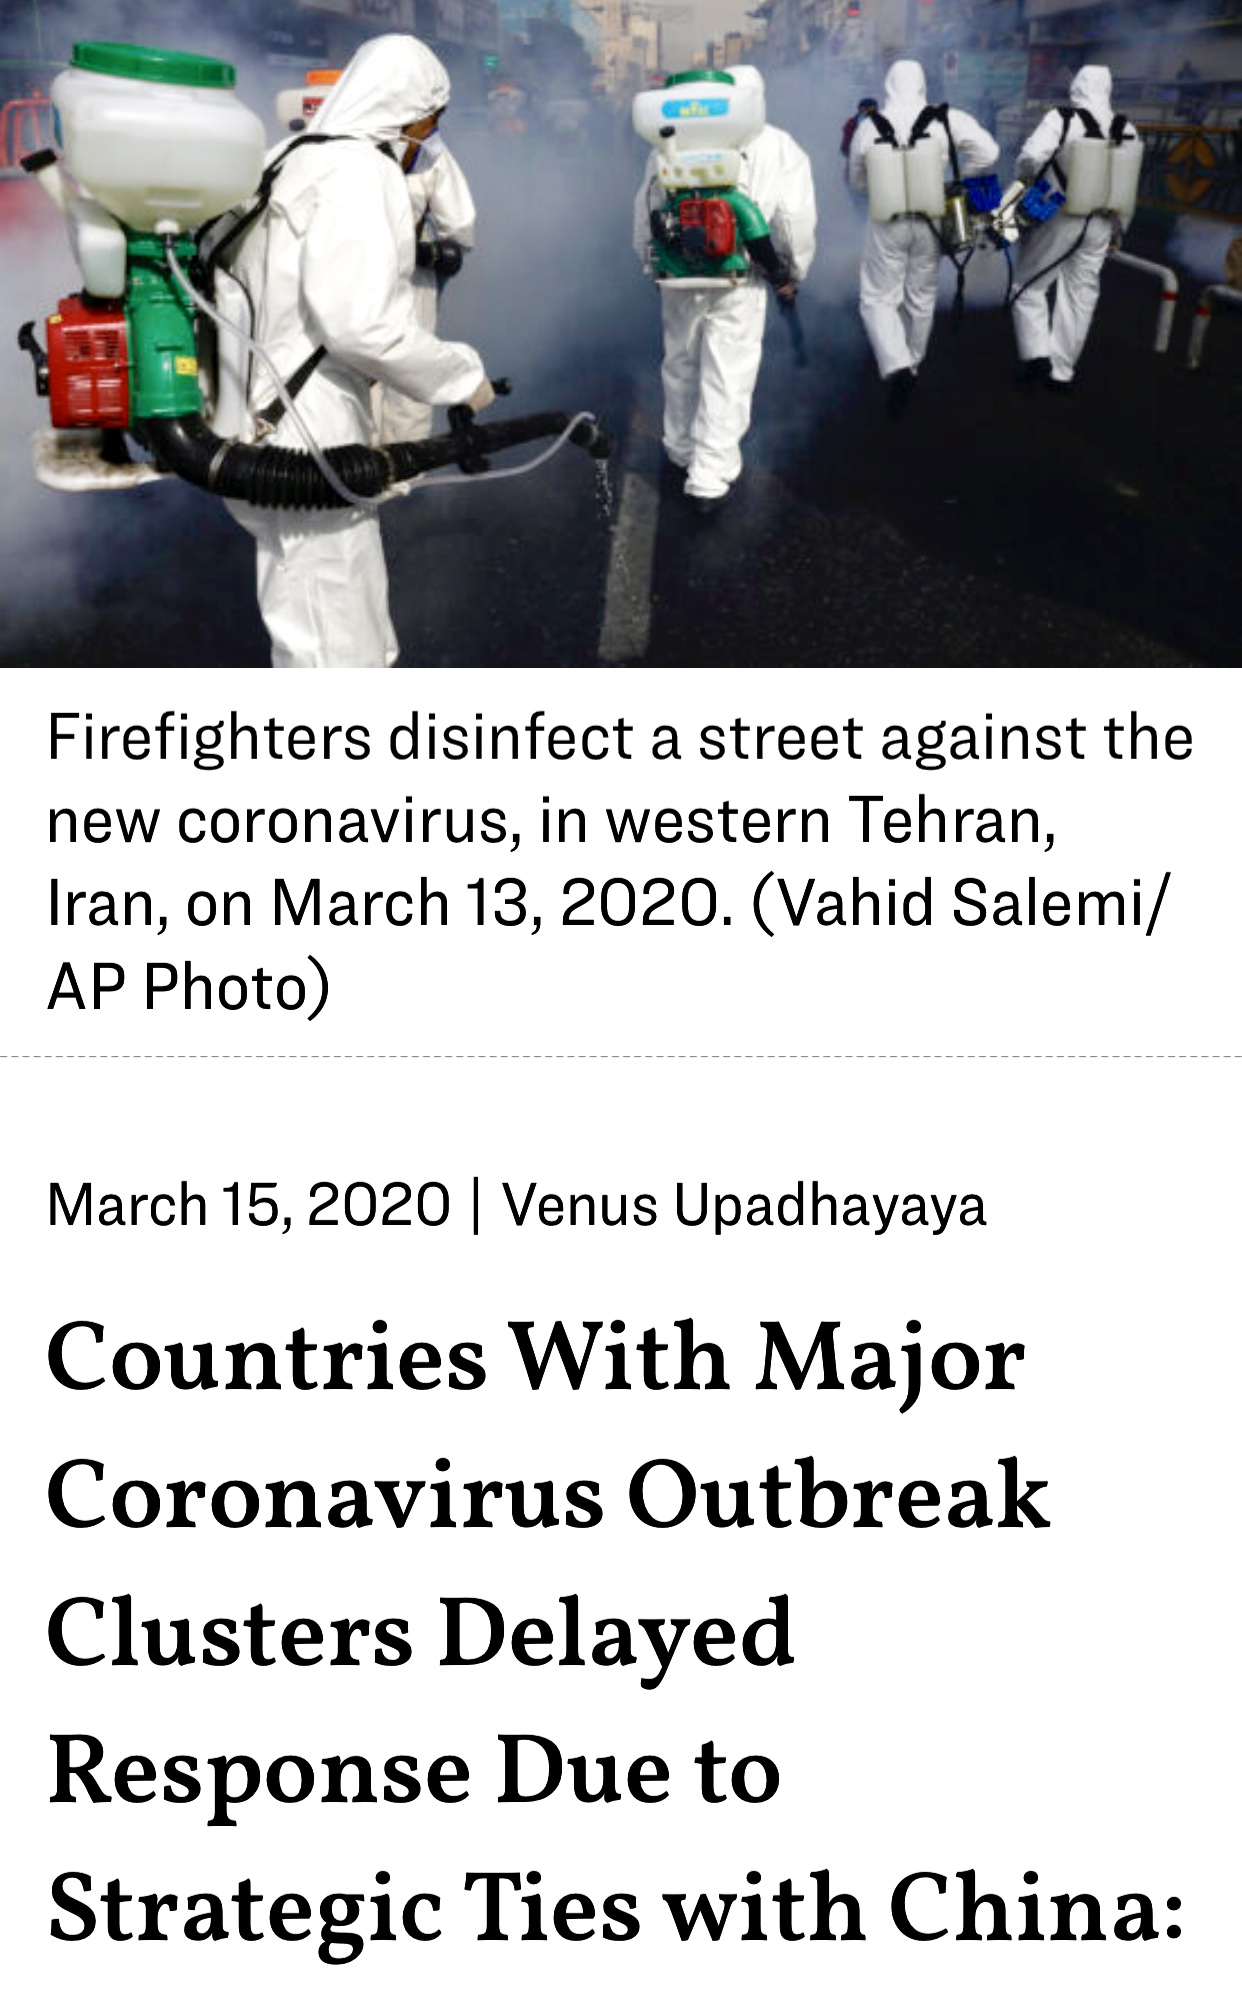 Countries With Major Coronavirus Outbreak Clusters Delayed Response Due to Strategic Ties with China